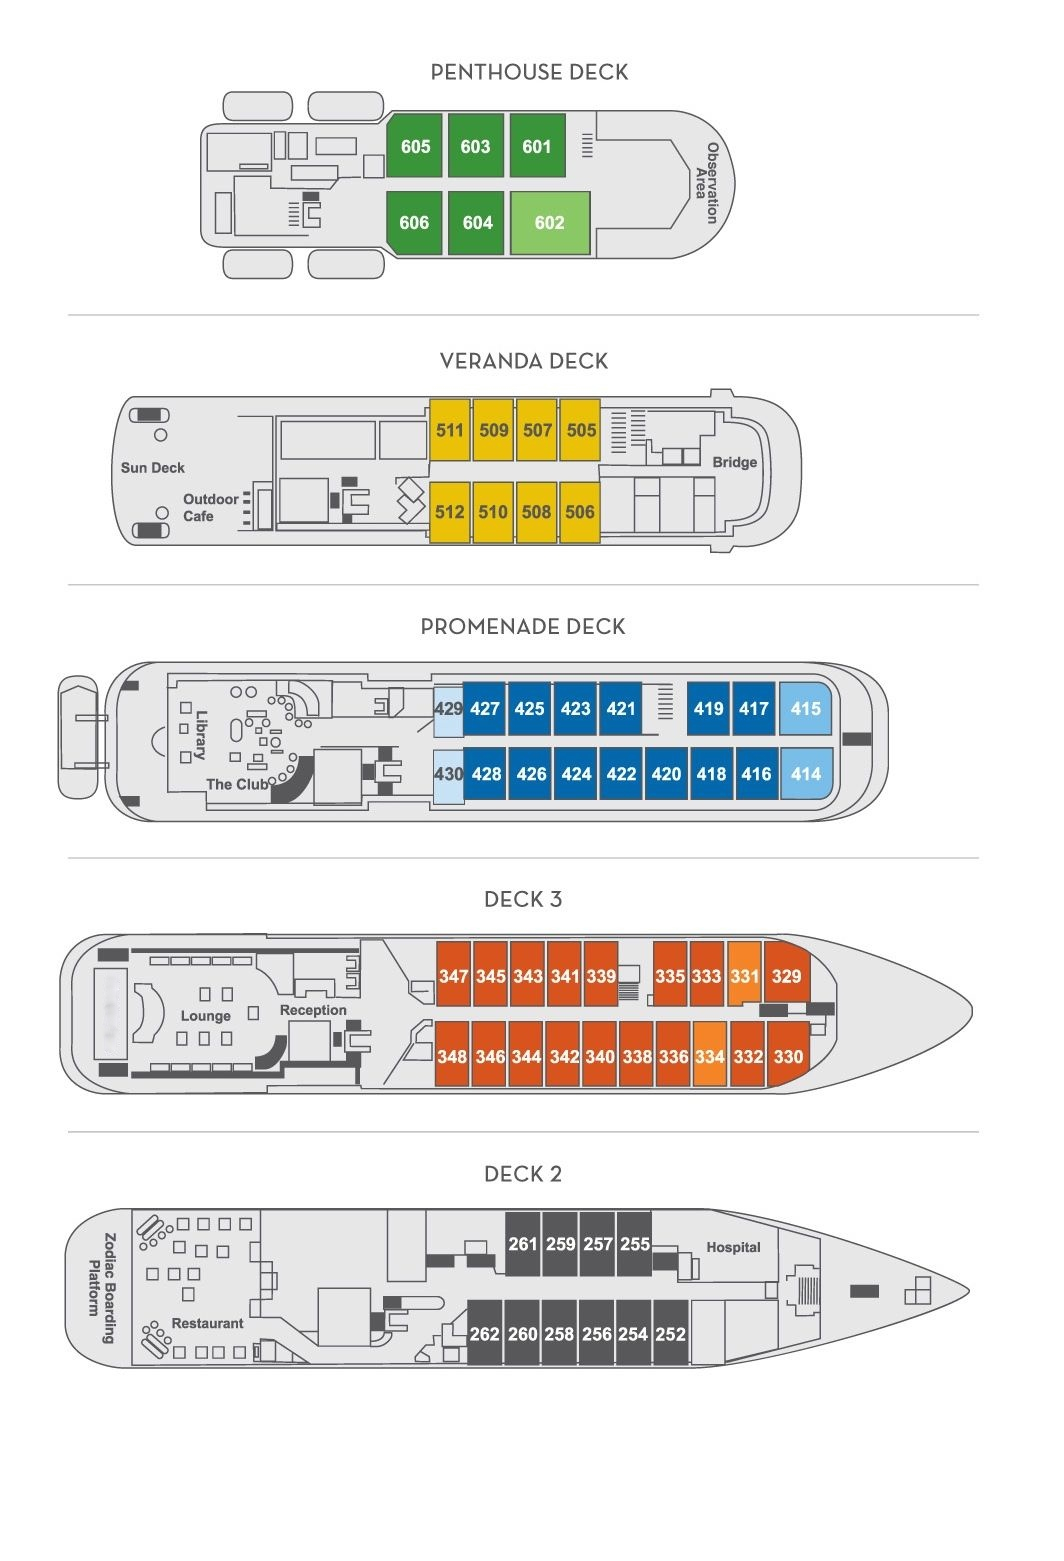 Cabin layout for Hebridean Sky